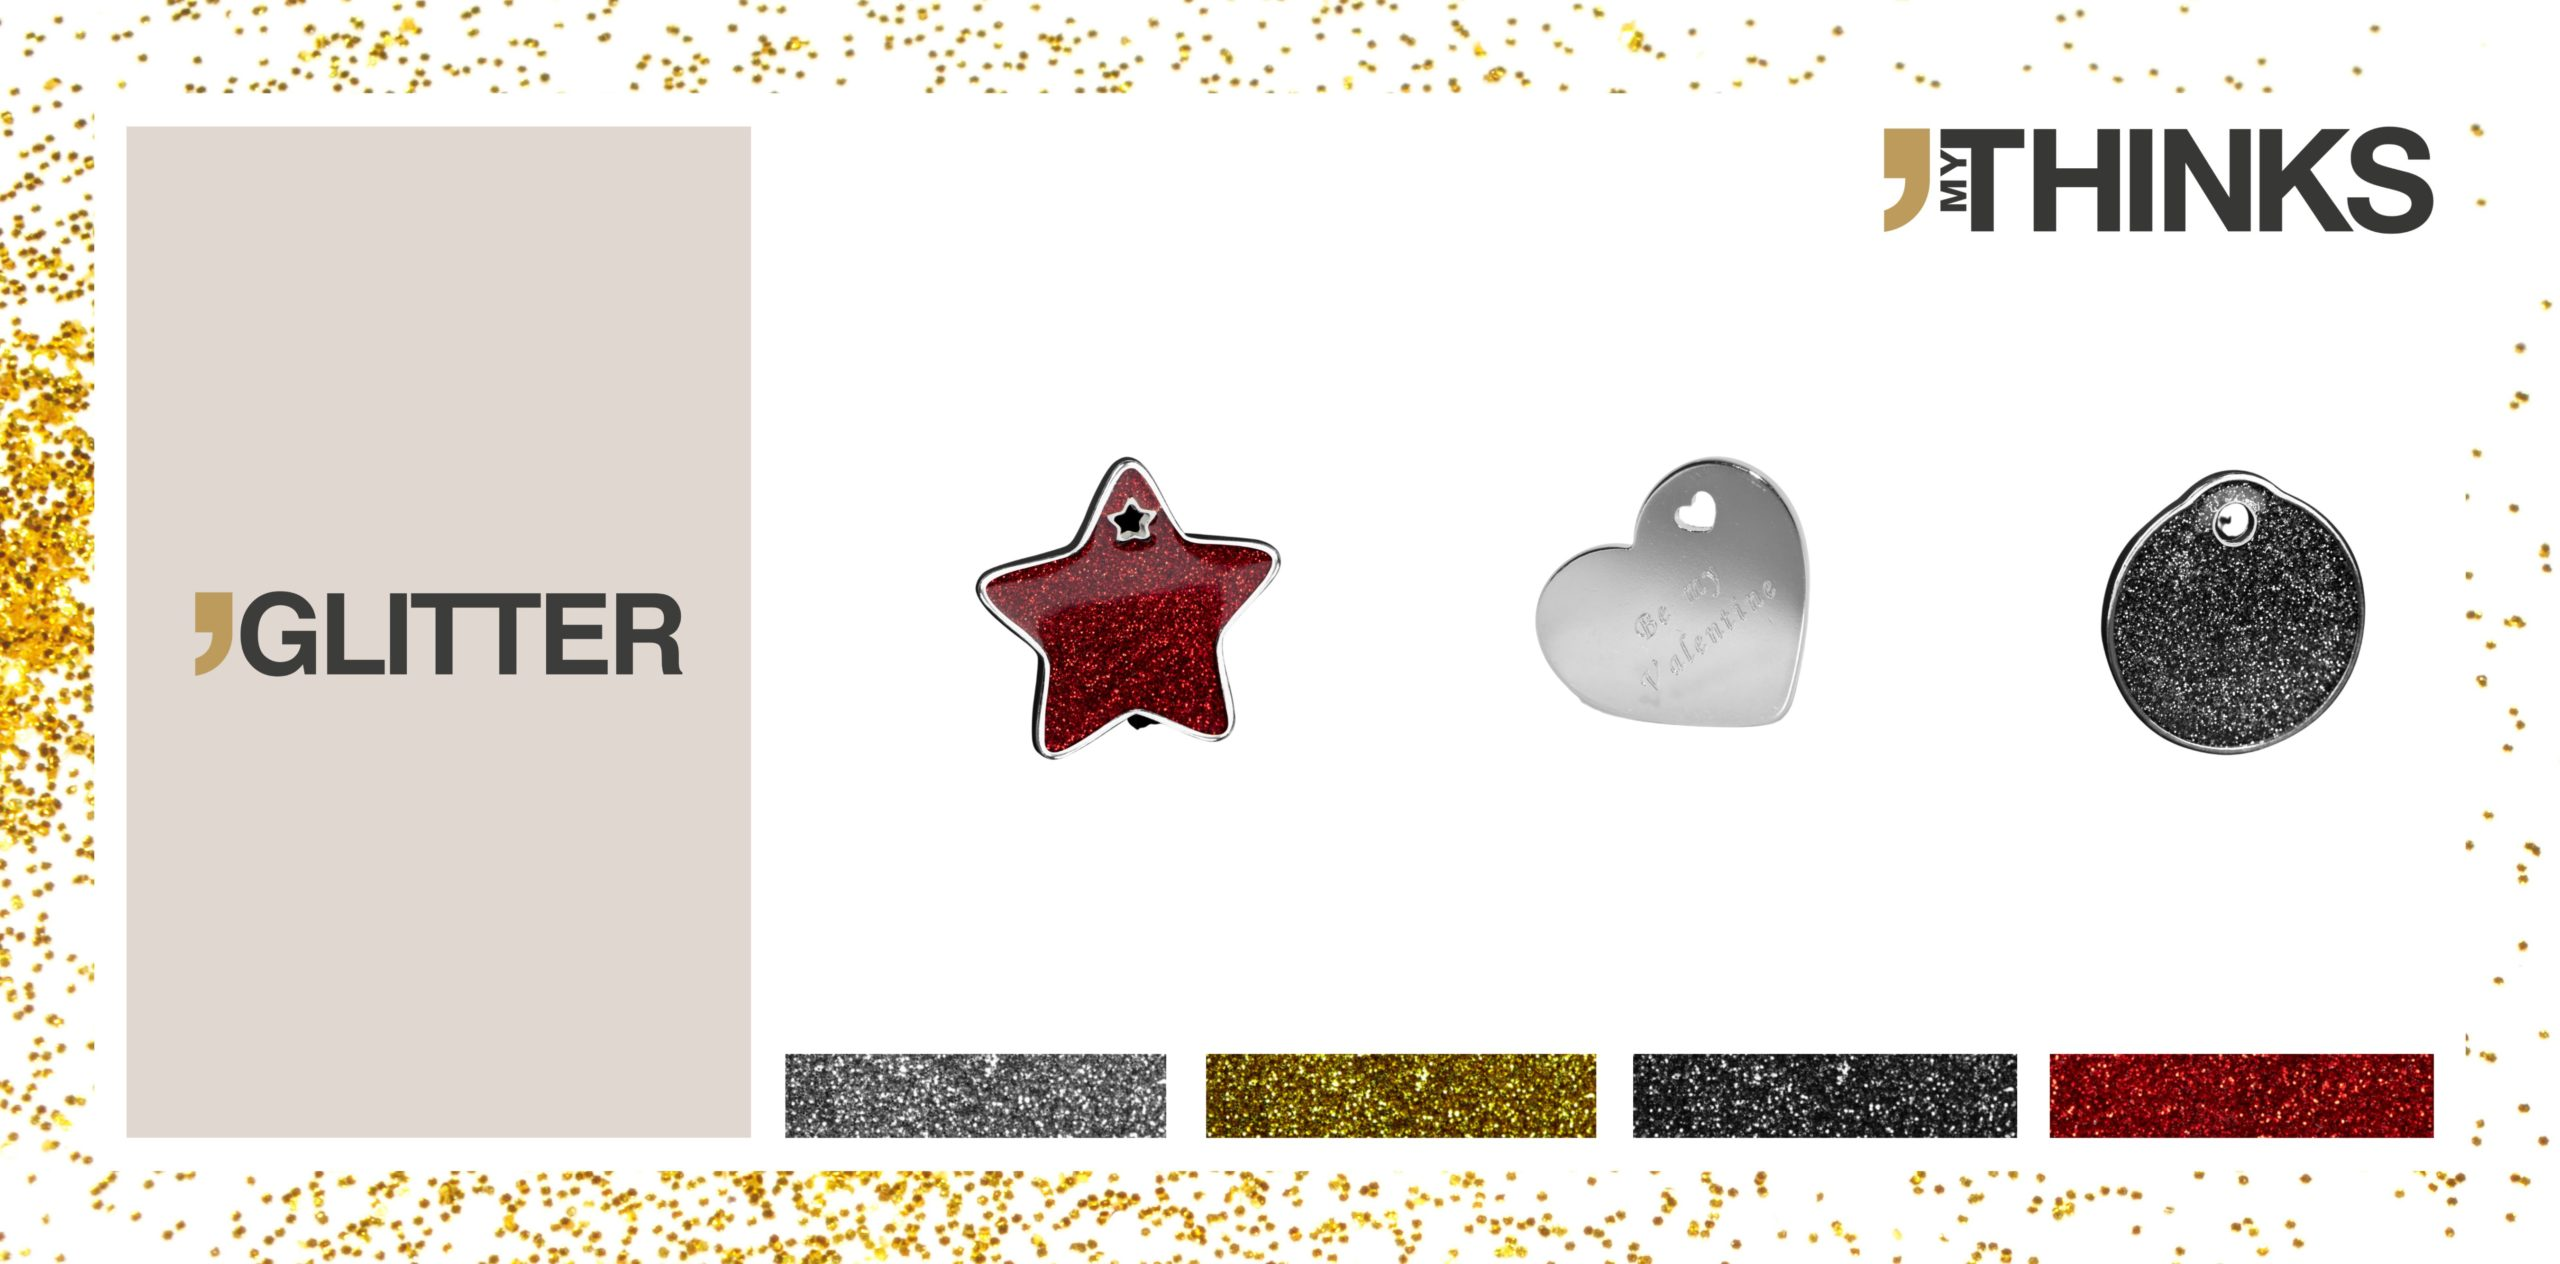 3 personalized gifts in enameled chromed zamak from glitter collection : red glitter star charm, heart medal backside personalized with diamond engraving, black glitter circle tag